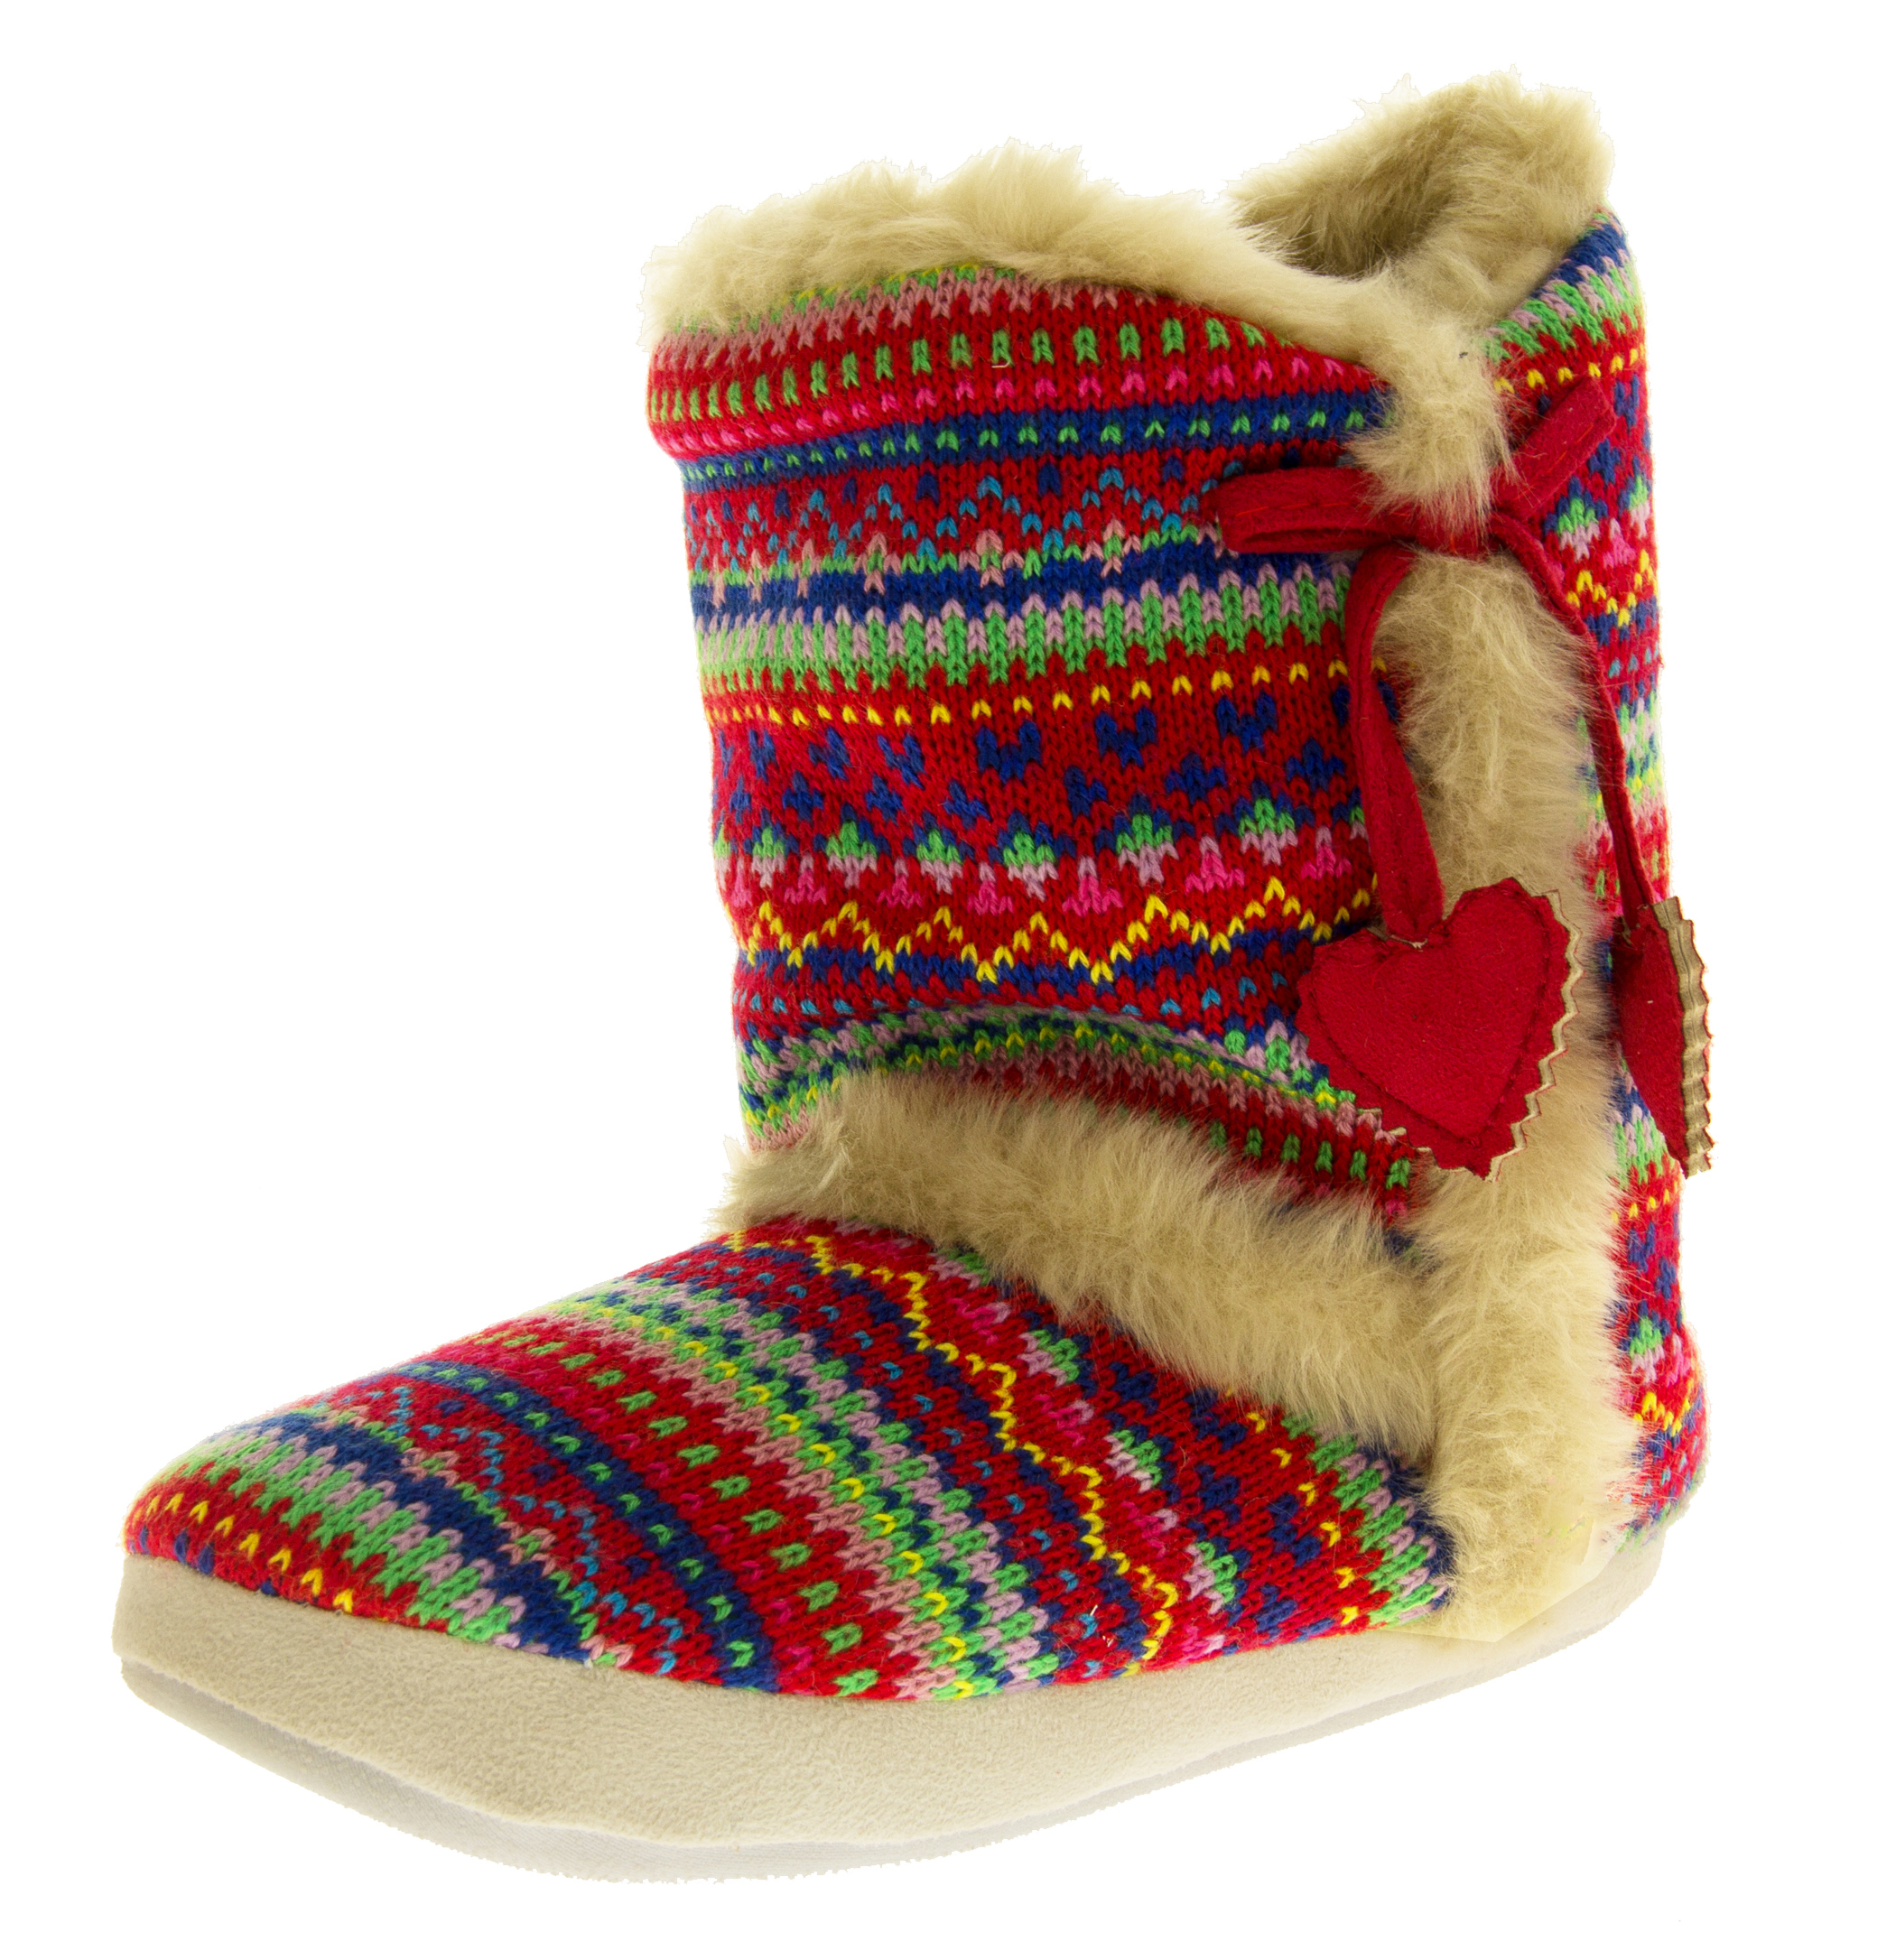 Ladies DUNLOP Boot Slippers Knitted Alpine Pattern Faux Fur Lined Slipper Boo...